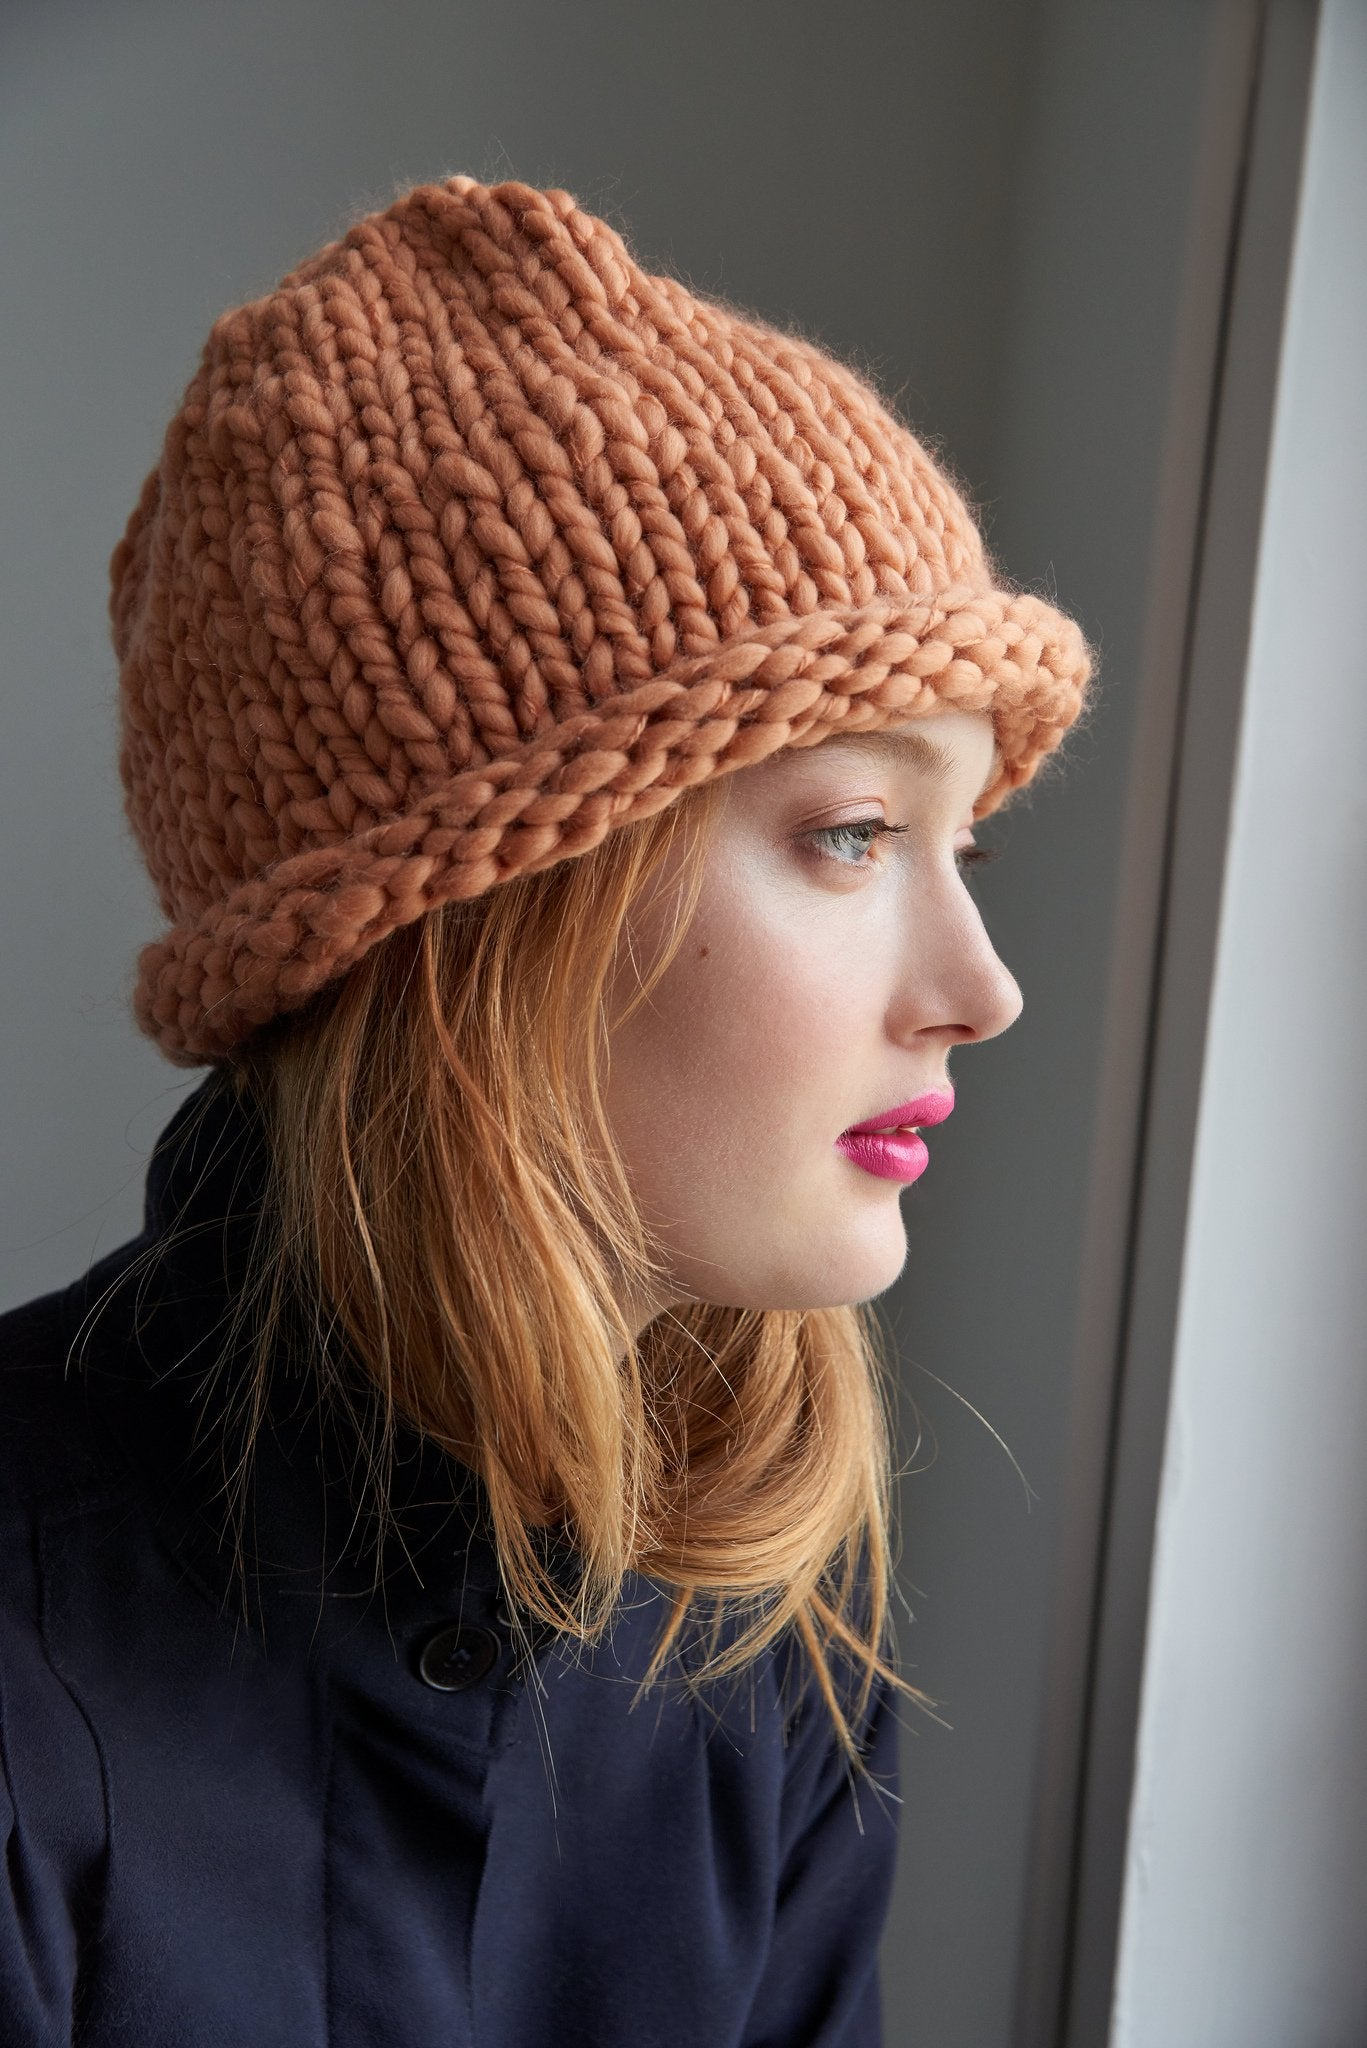 All You Knit Kit - My First Hat - Merino No. 5